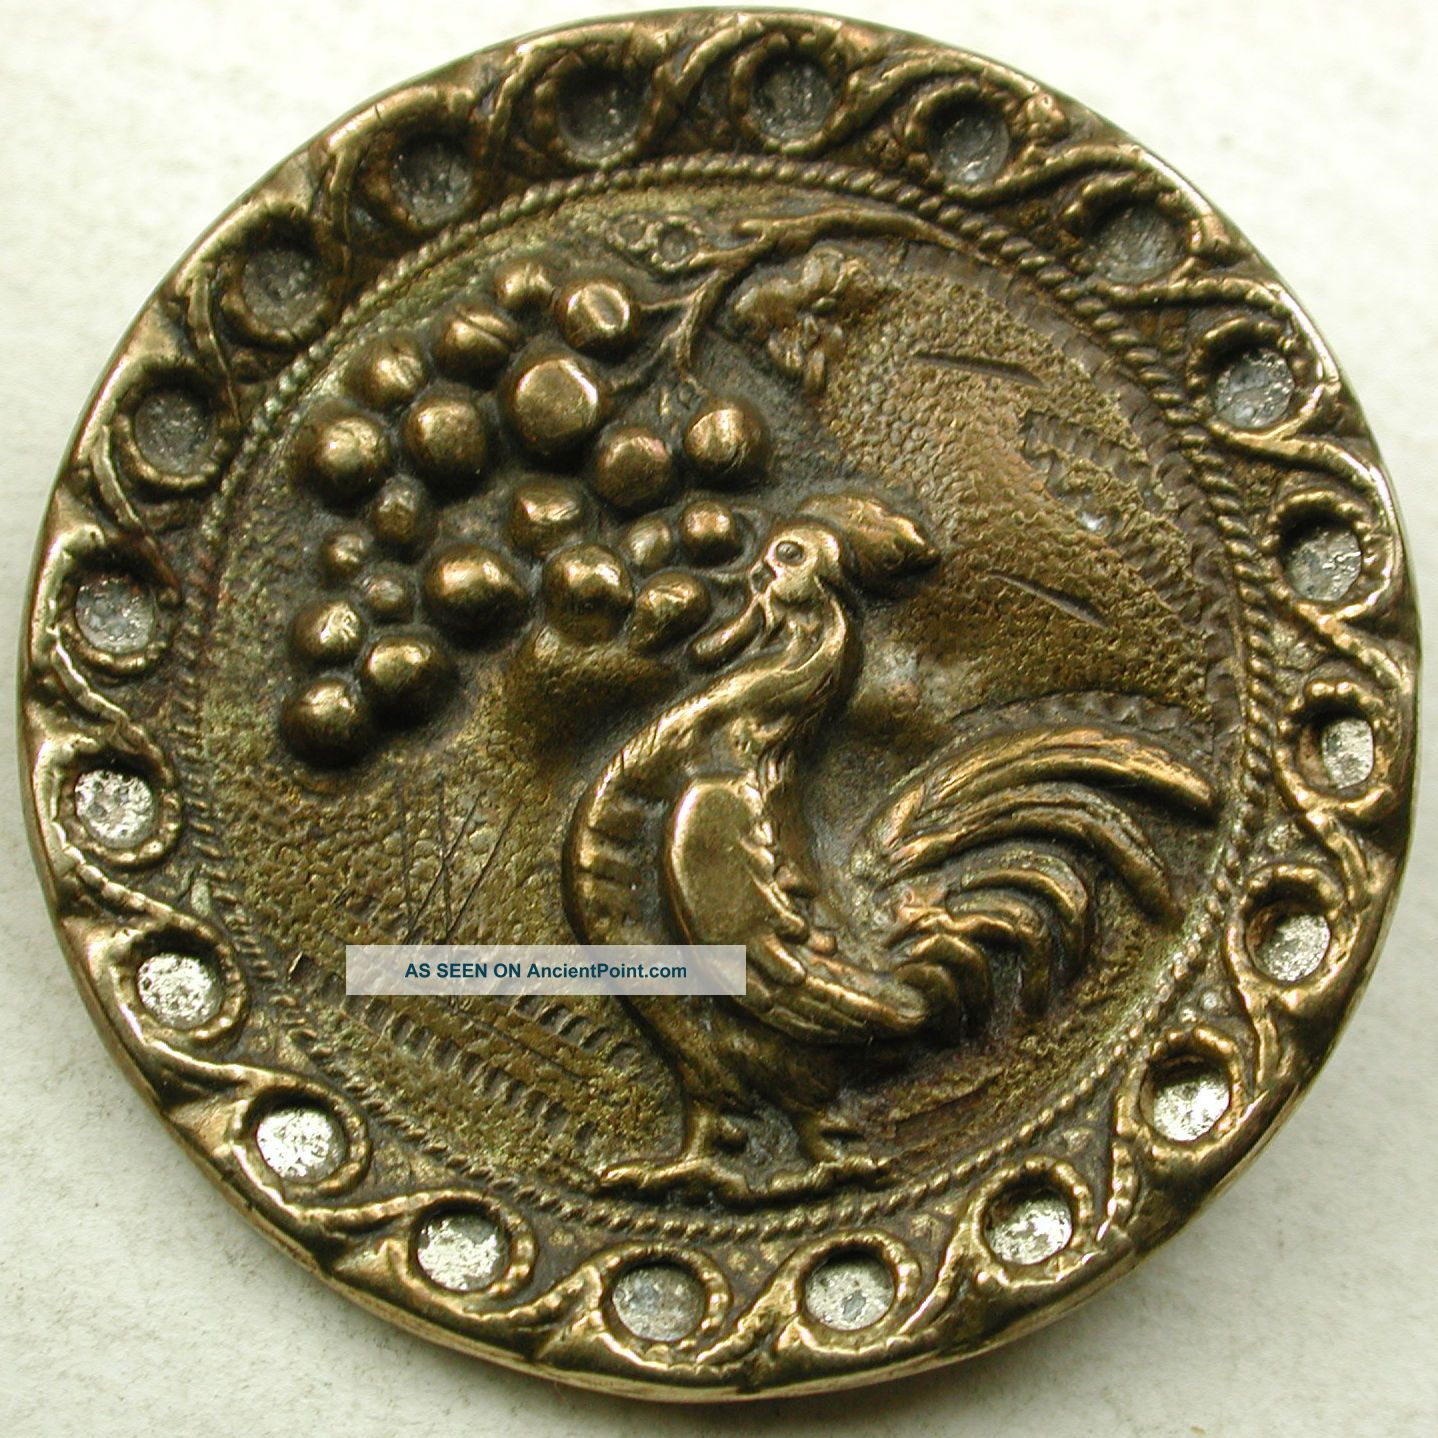 Antique Brass Button Rooster Eating Grapes W/ Cutout Border Design - 1 & 5/16